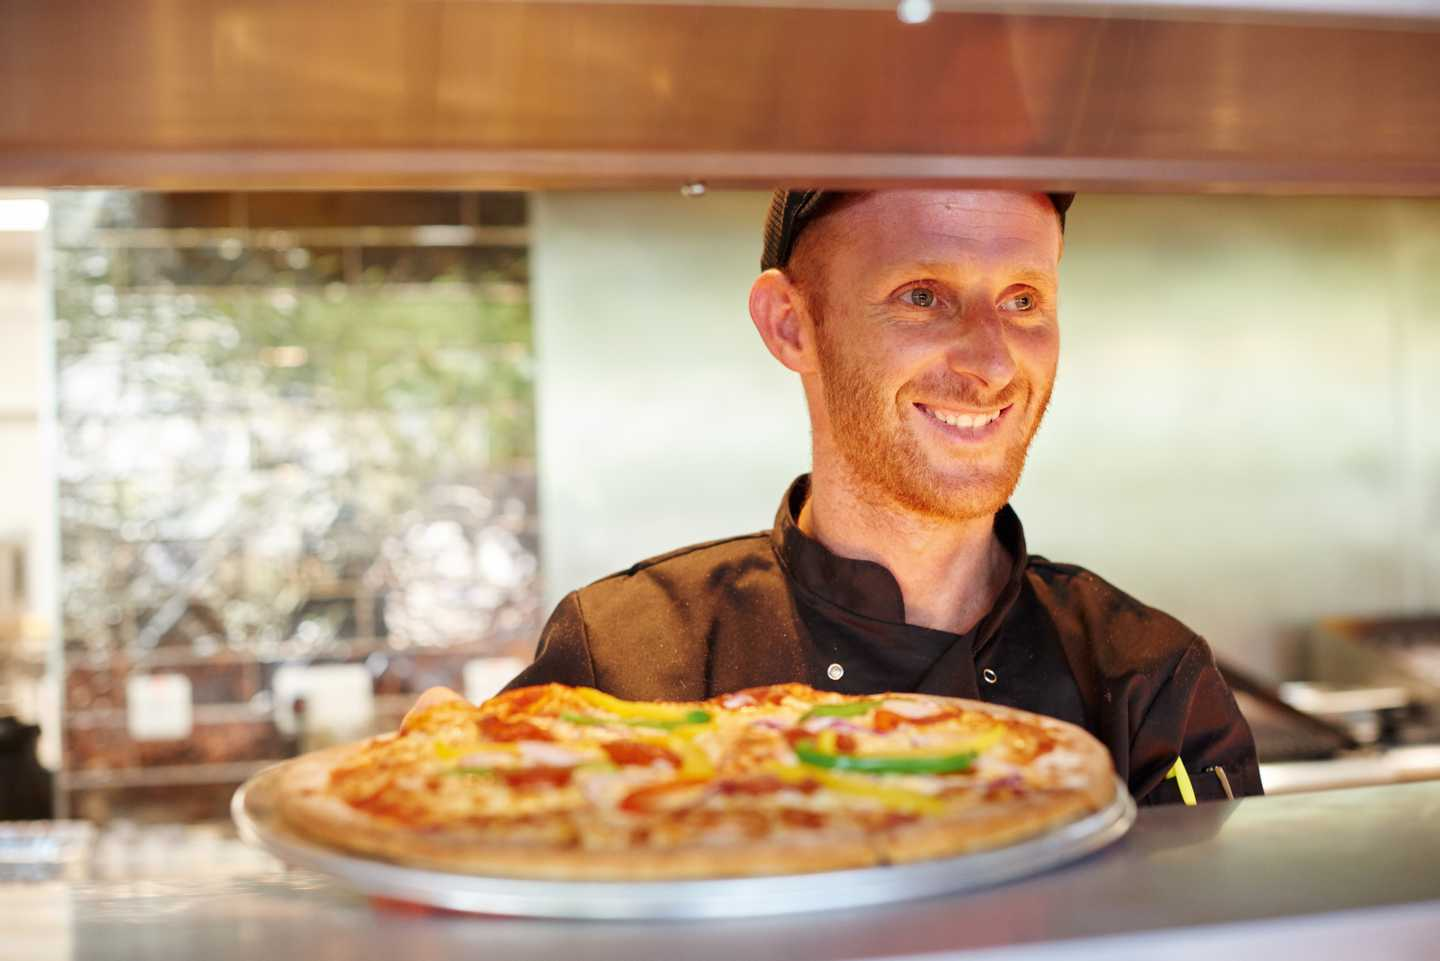 A chef has just finished cooking a pizza